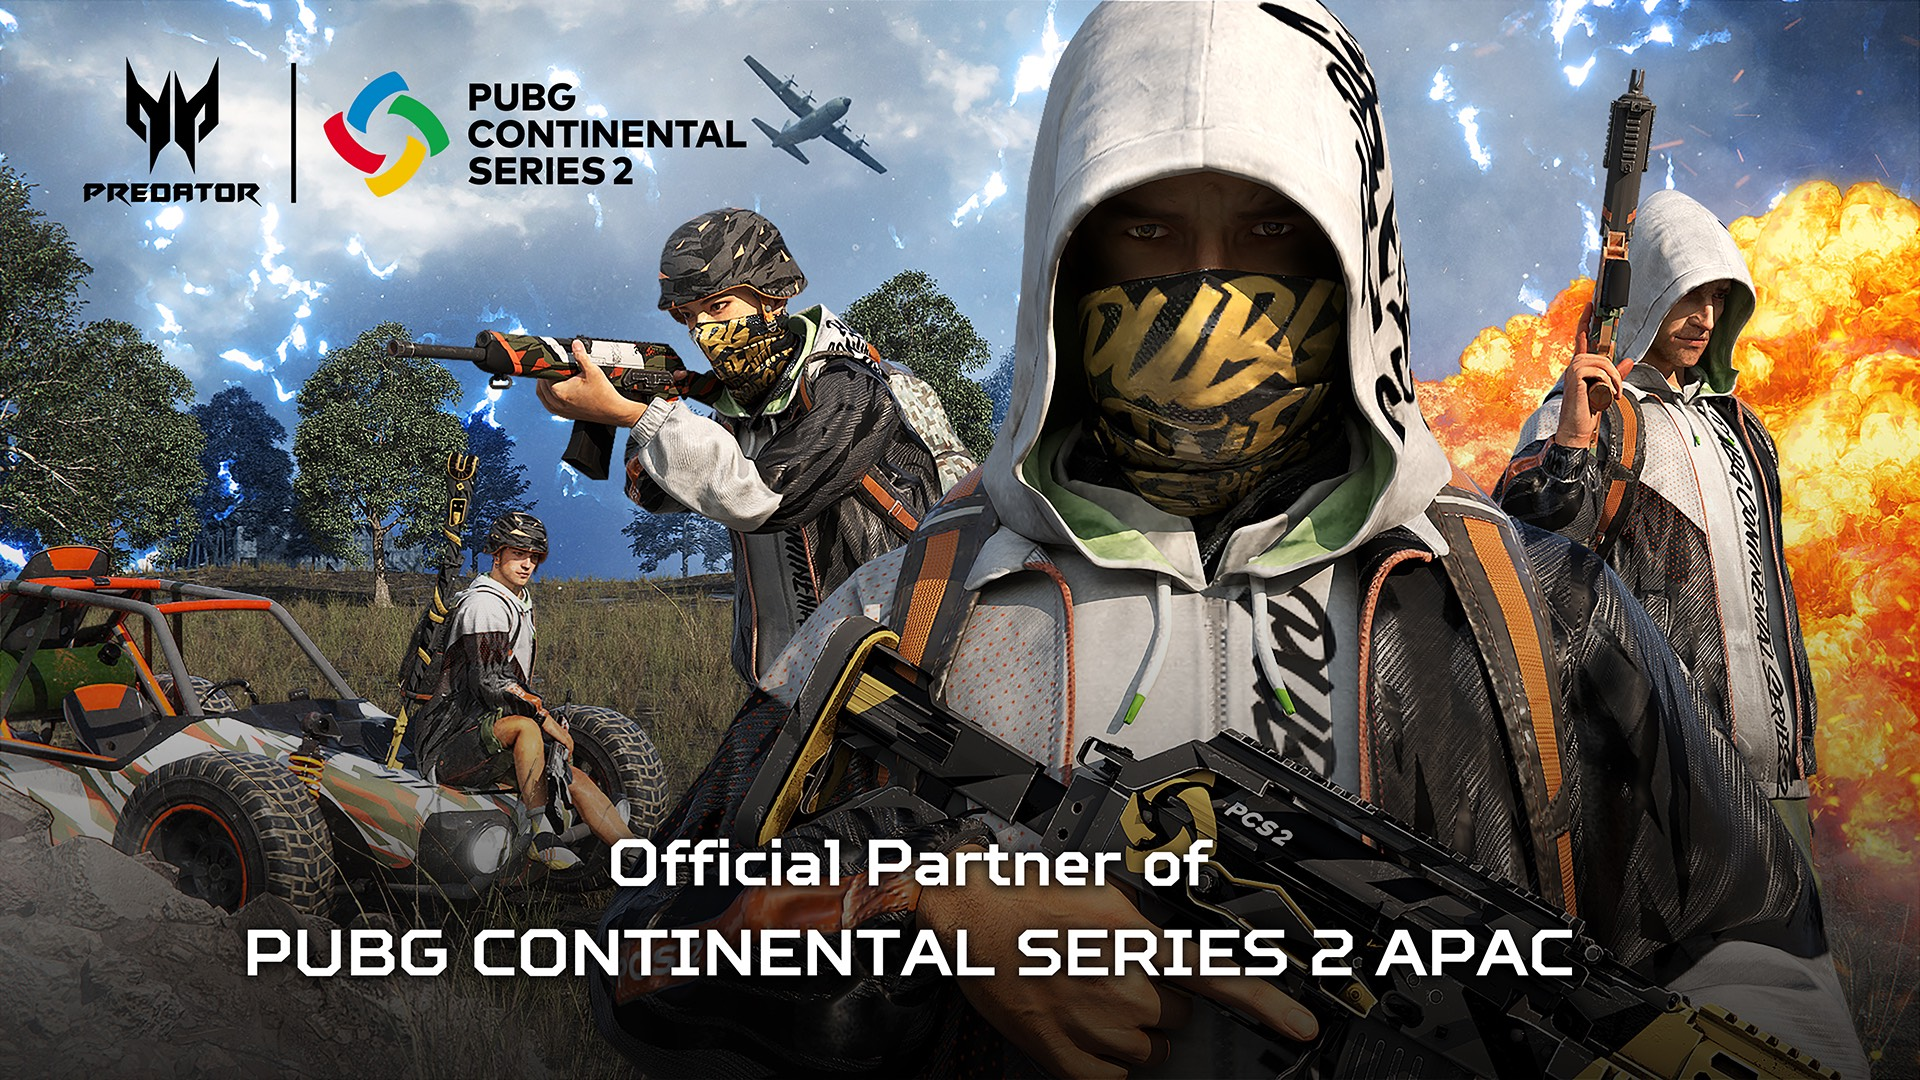 • Acer Partners with PUBG for Continental Series 2 APAC